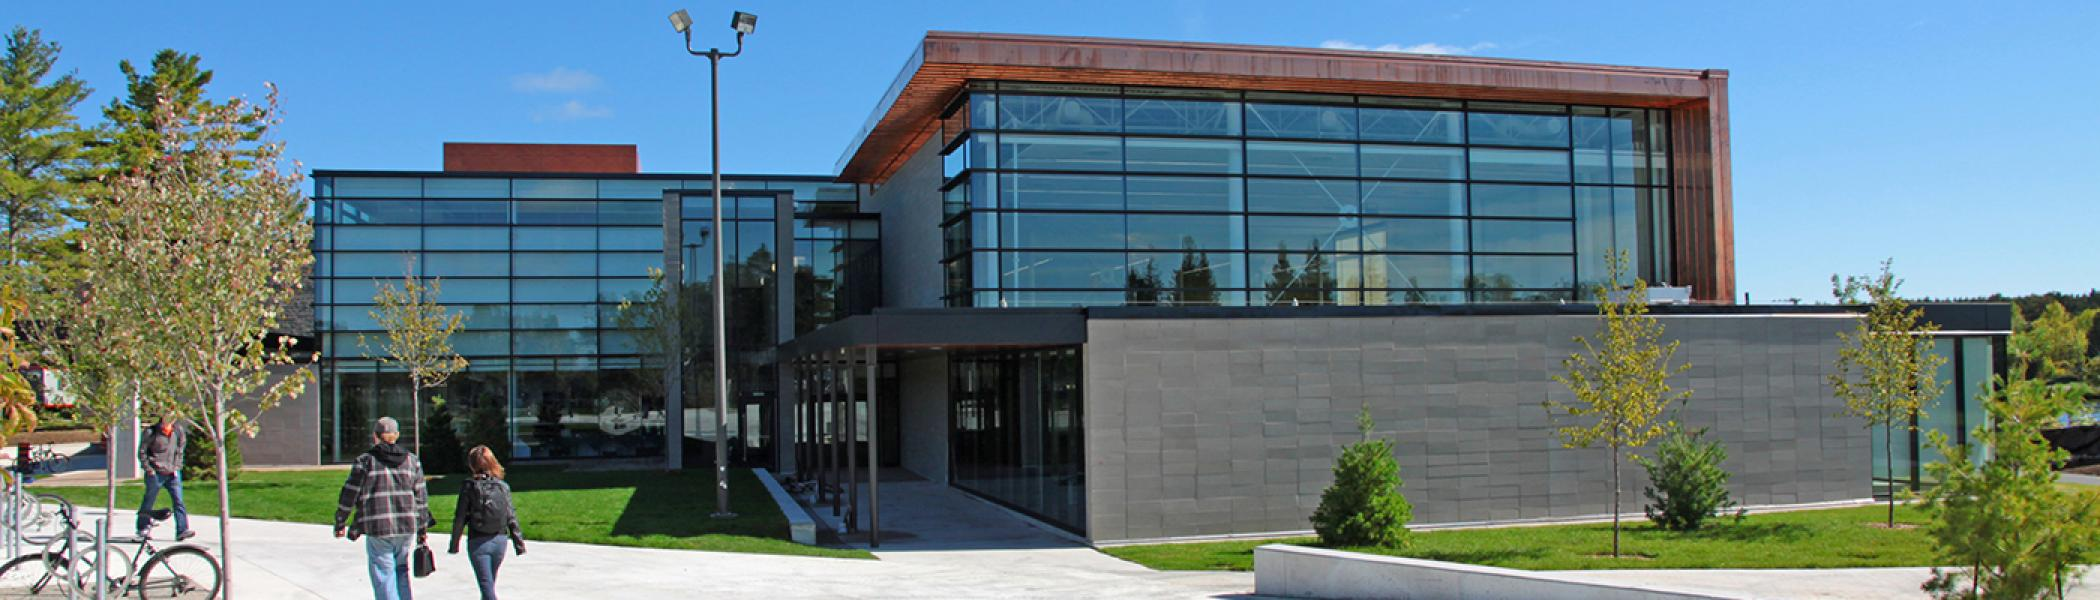 Photo of the outside of the Athletics Centre in summer. The copper features of the building contrast against the blue summer sky.